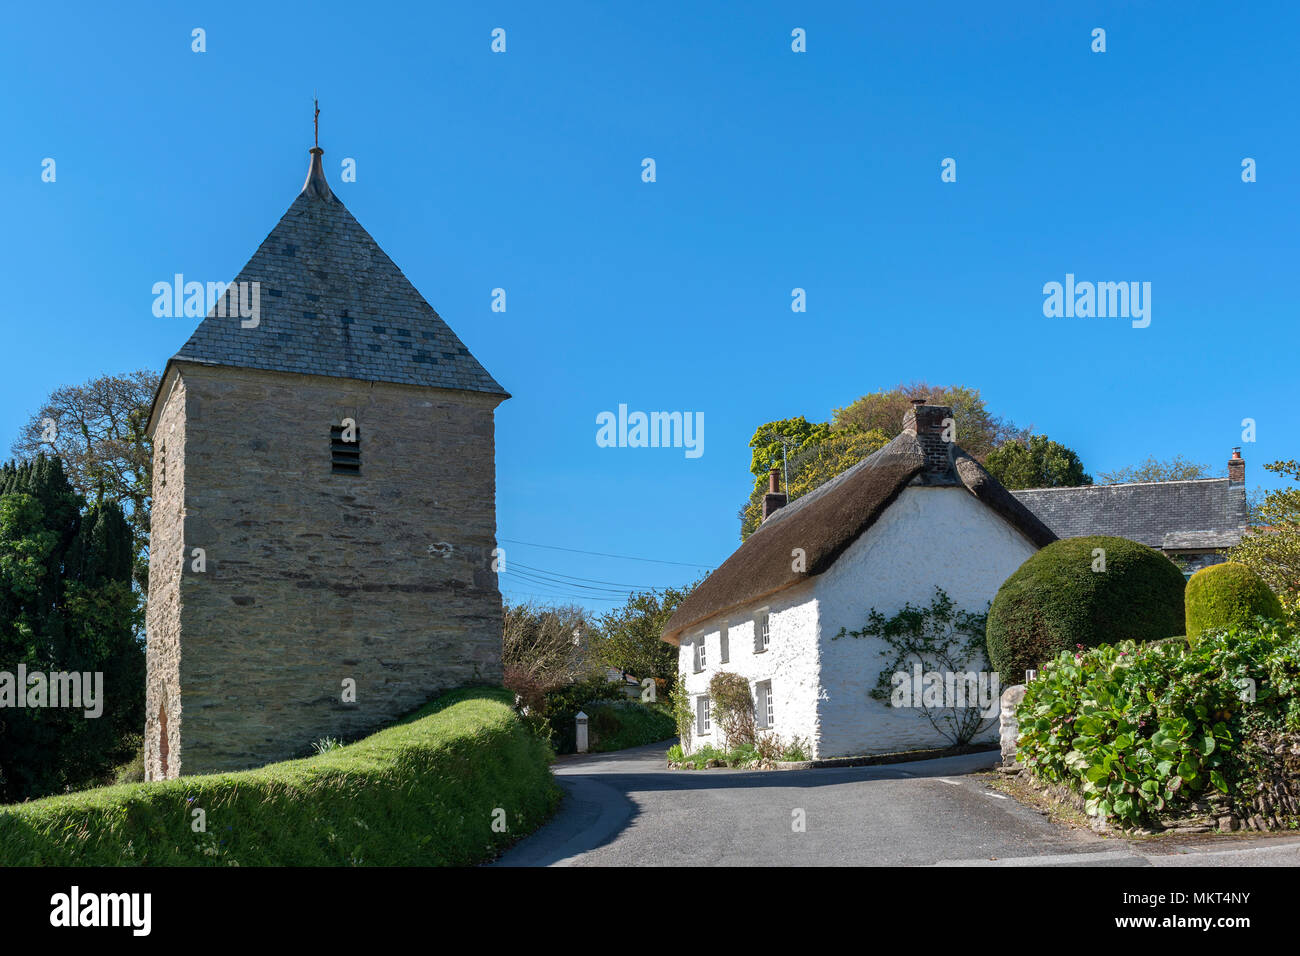 cottage, church, feock village, truro, cornwall, england, britain, uk - Stock Image